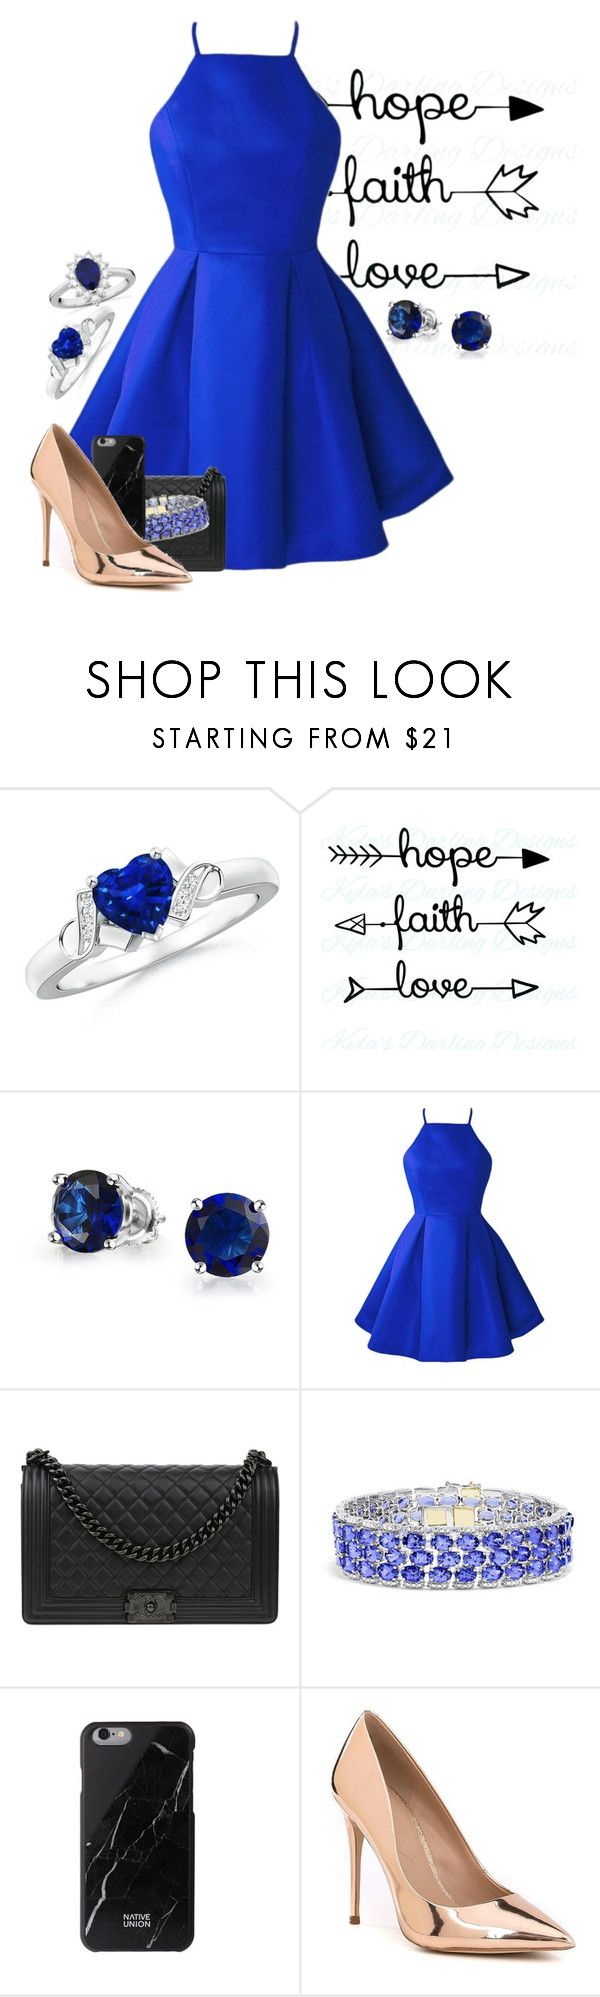 """Little Blue Dress"" by kaileewhaley13 ❤ liked on Polyvore featuring Bling Jewelry, Chanel, Effy Jewelry, ALDO and Allurez"